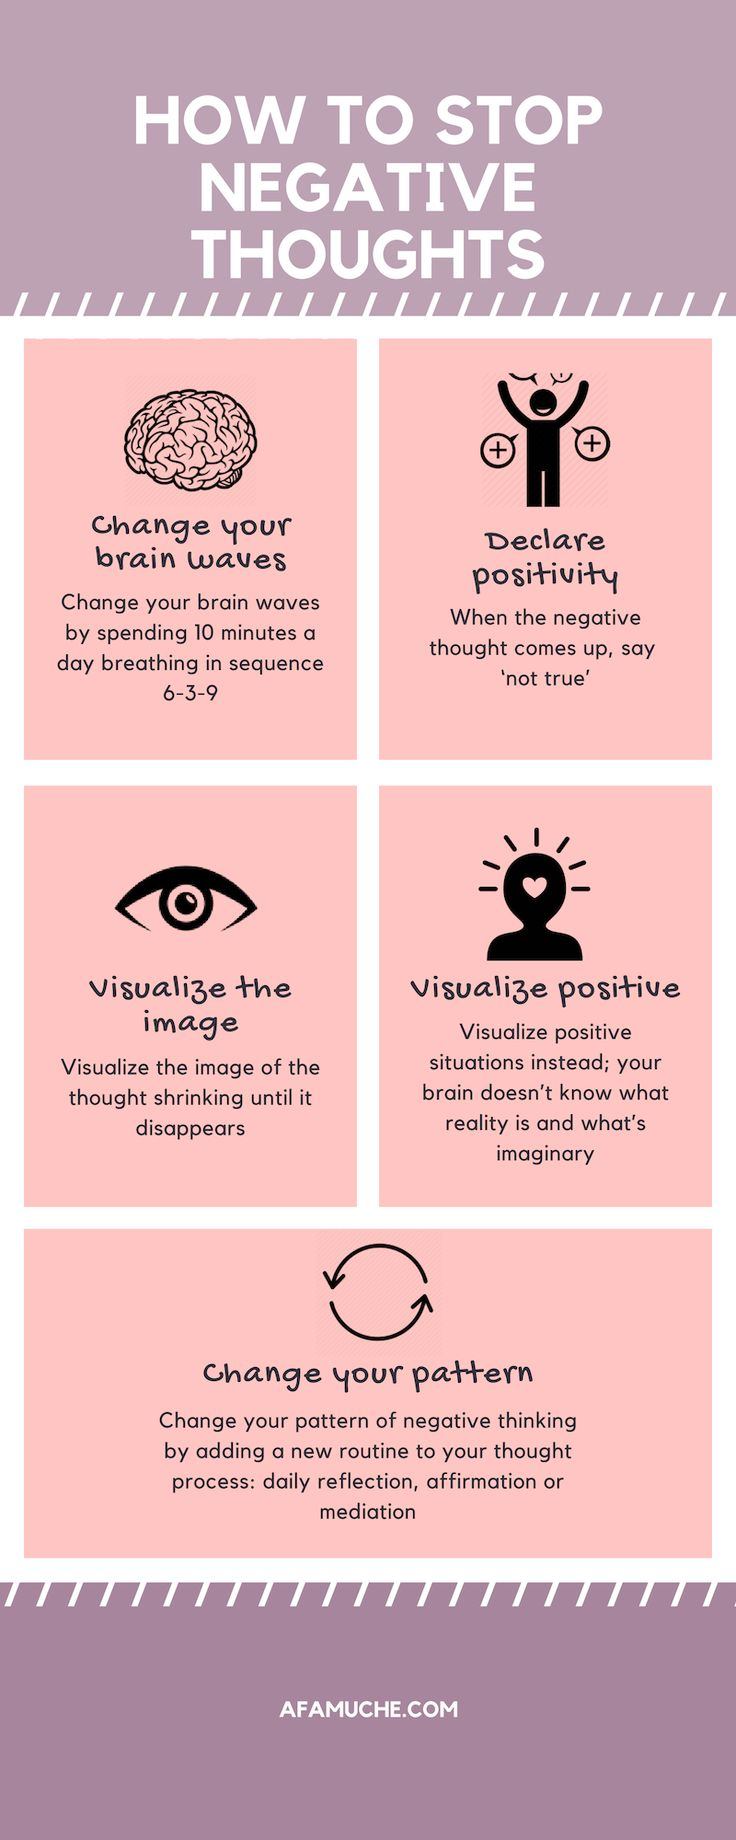 How To Stop Negative Thoughts Infographic